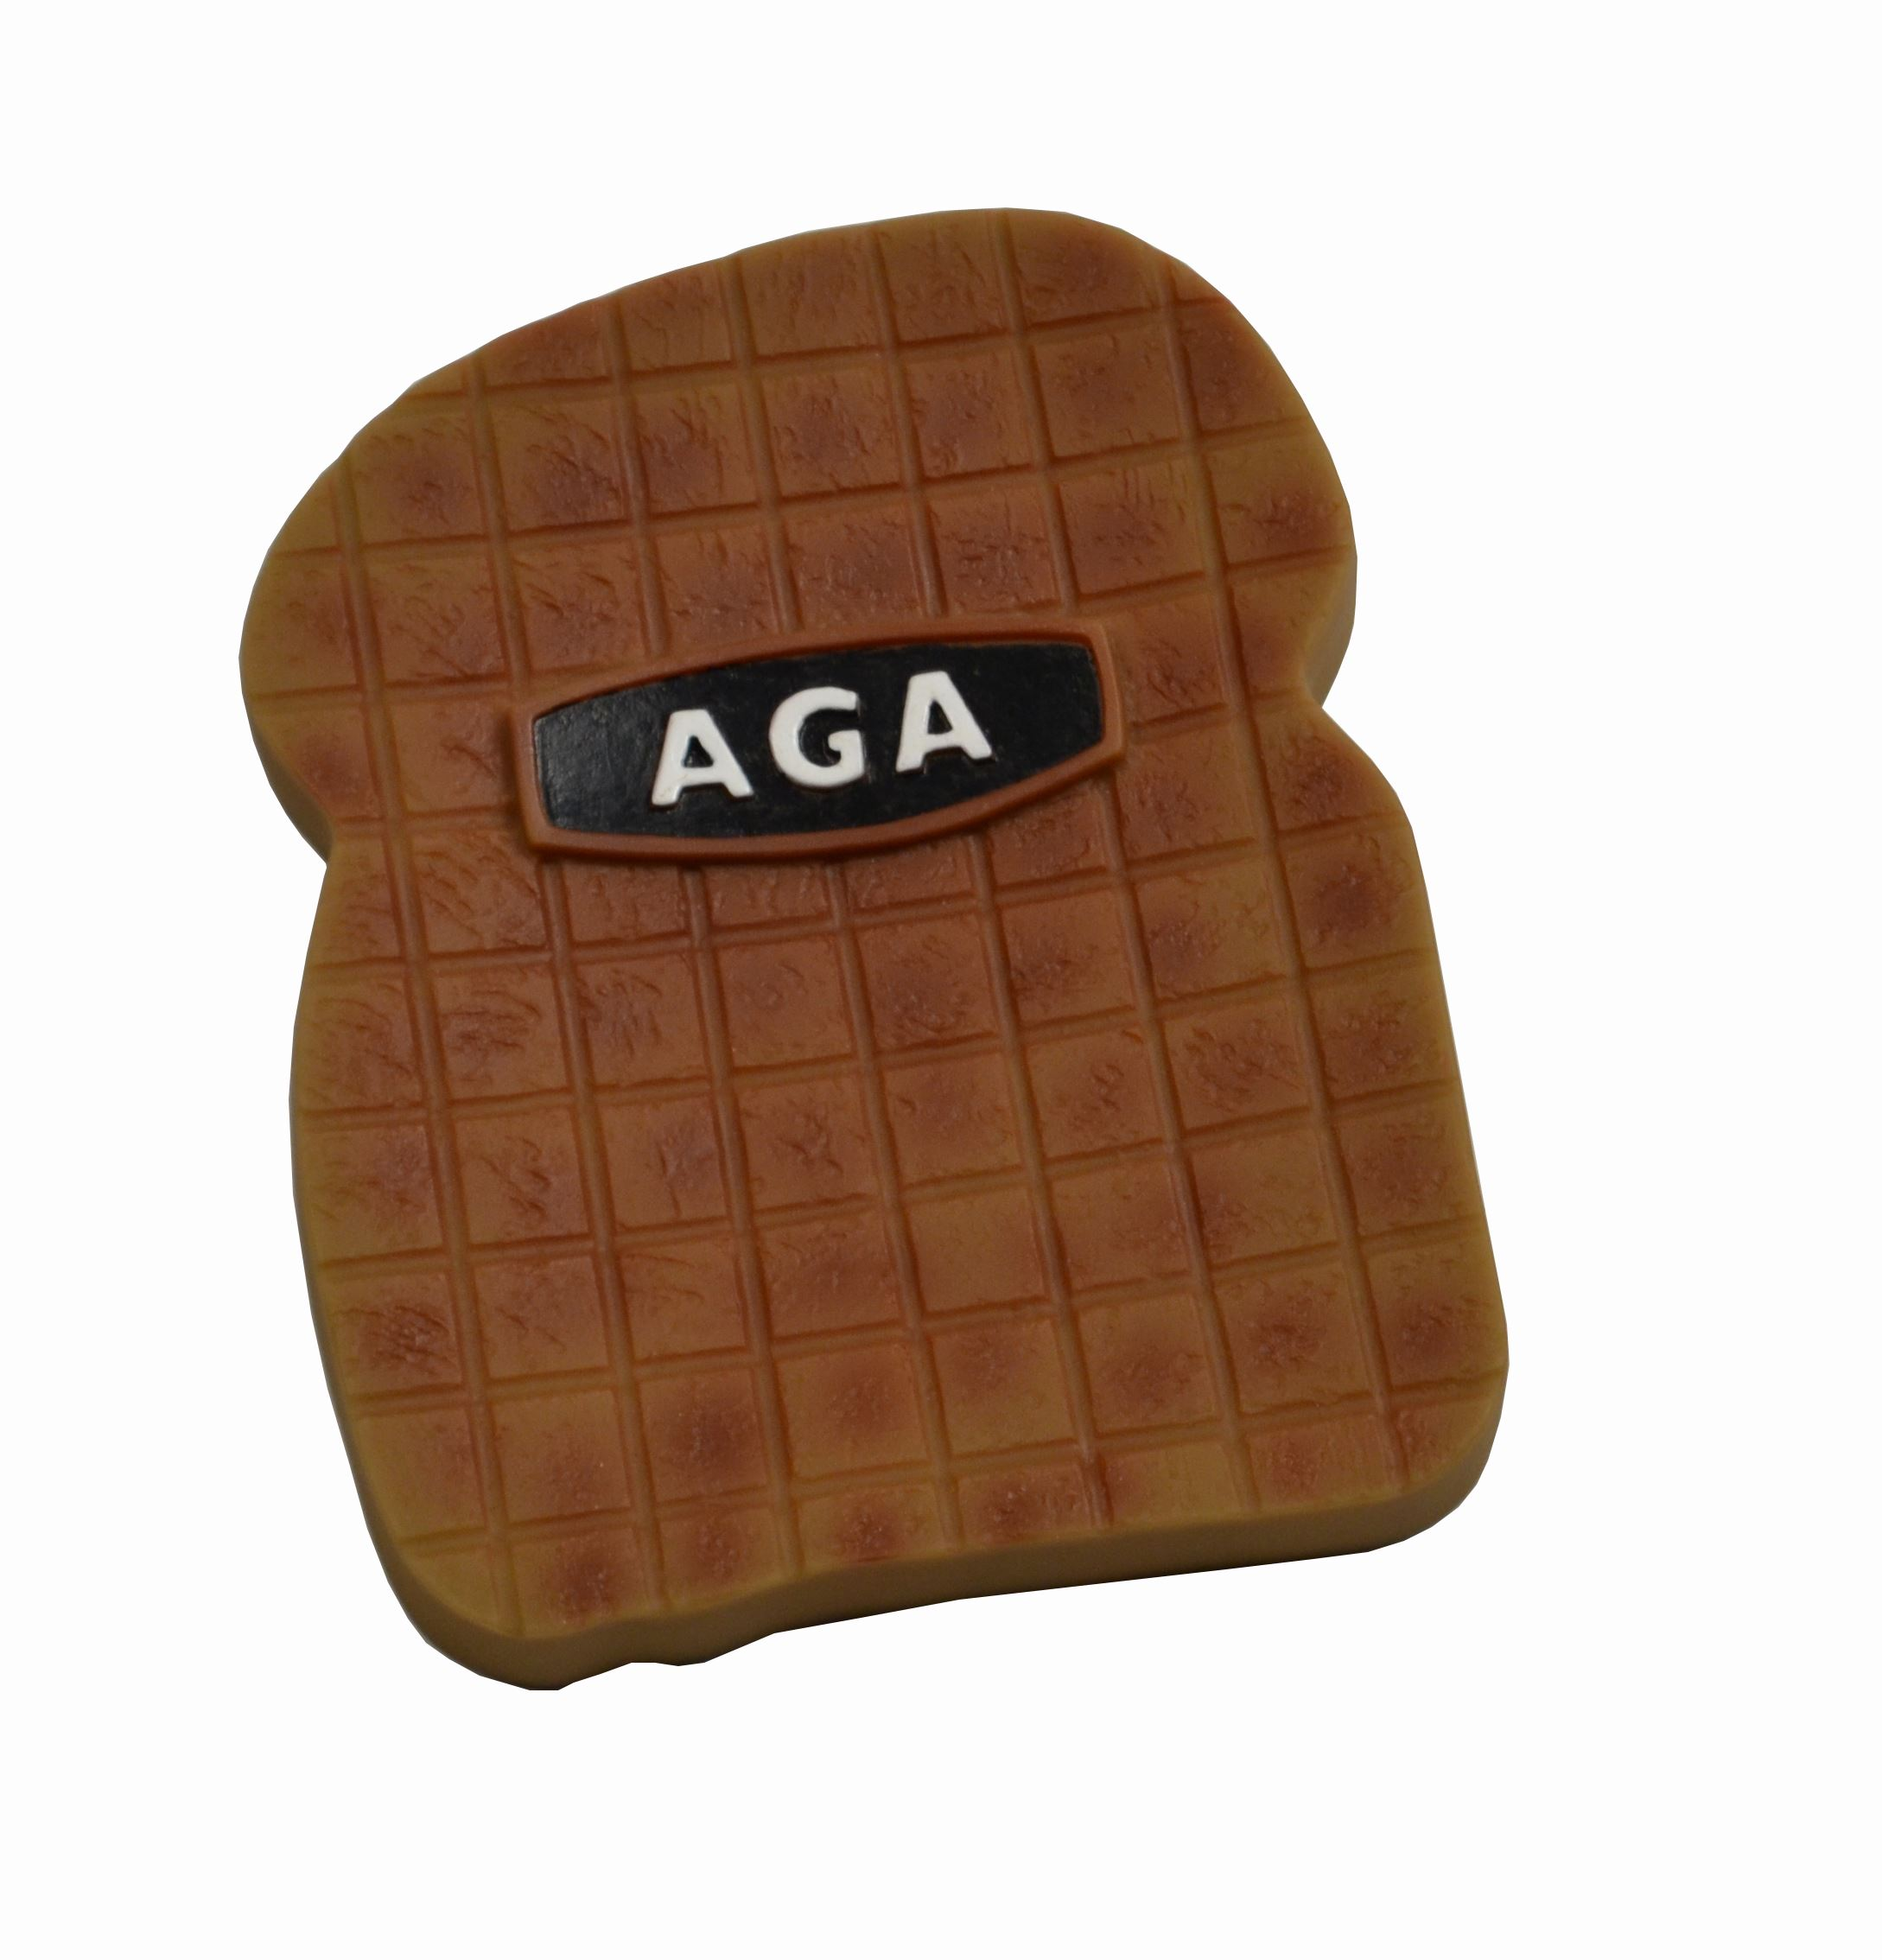 AGA Toast Pet Toy lowest price